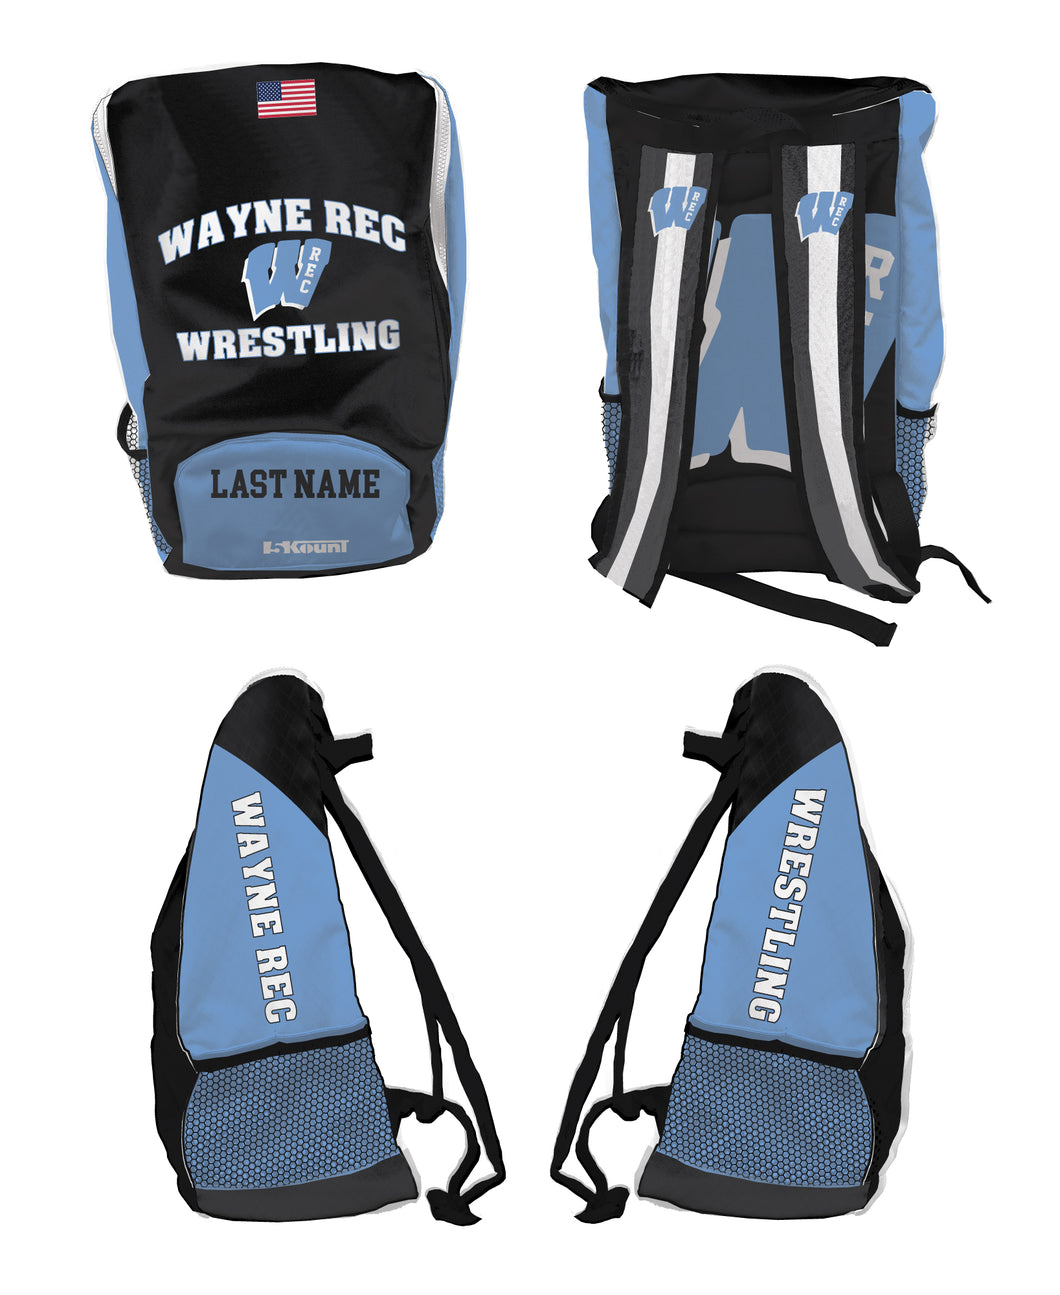 Wayne Rec Wrestling Sublimated Backpack - 5KounT2018